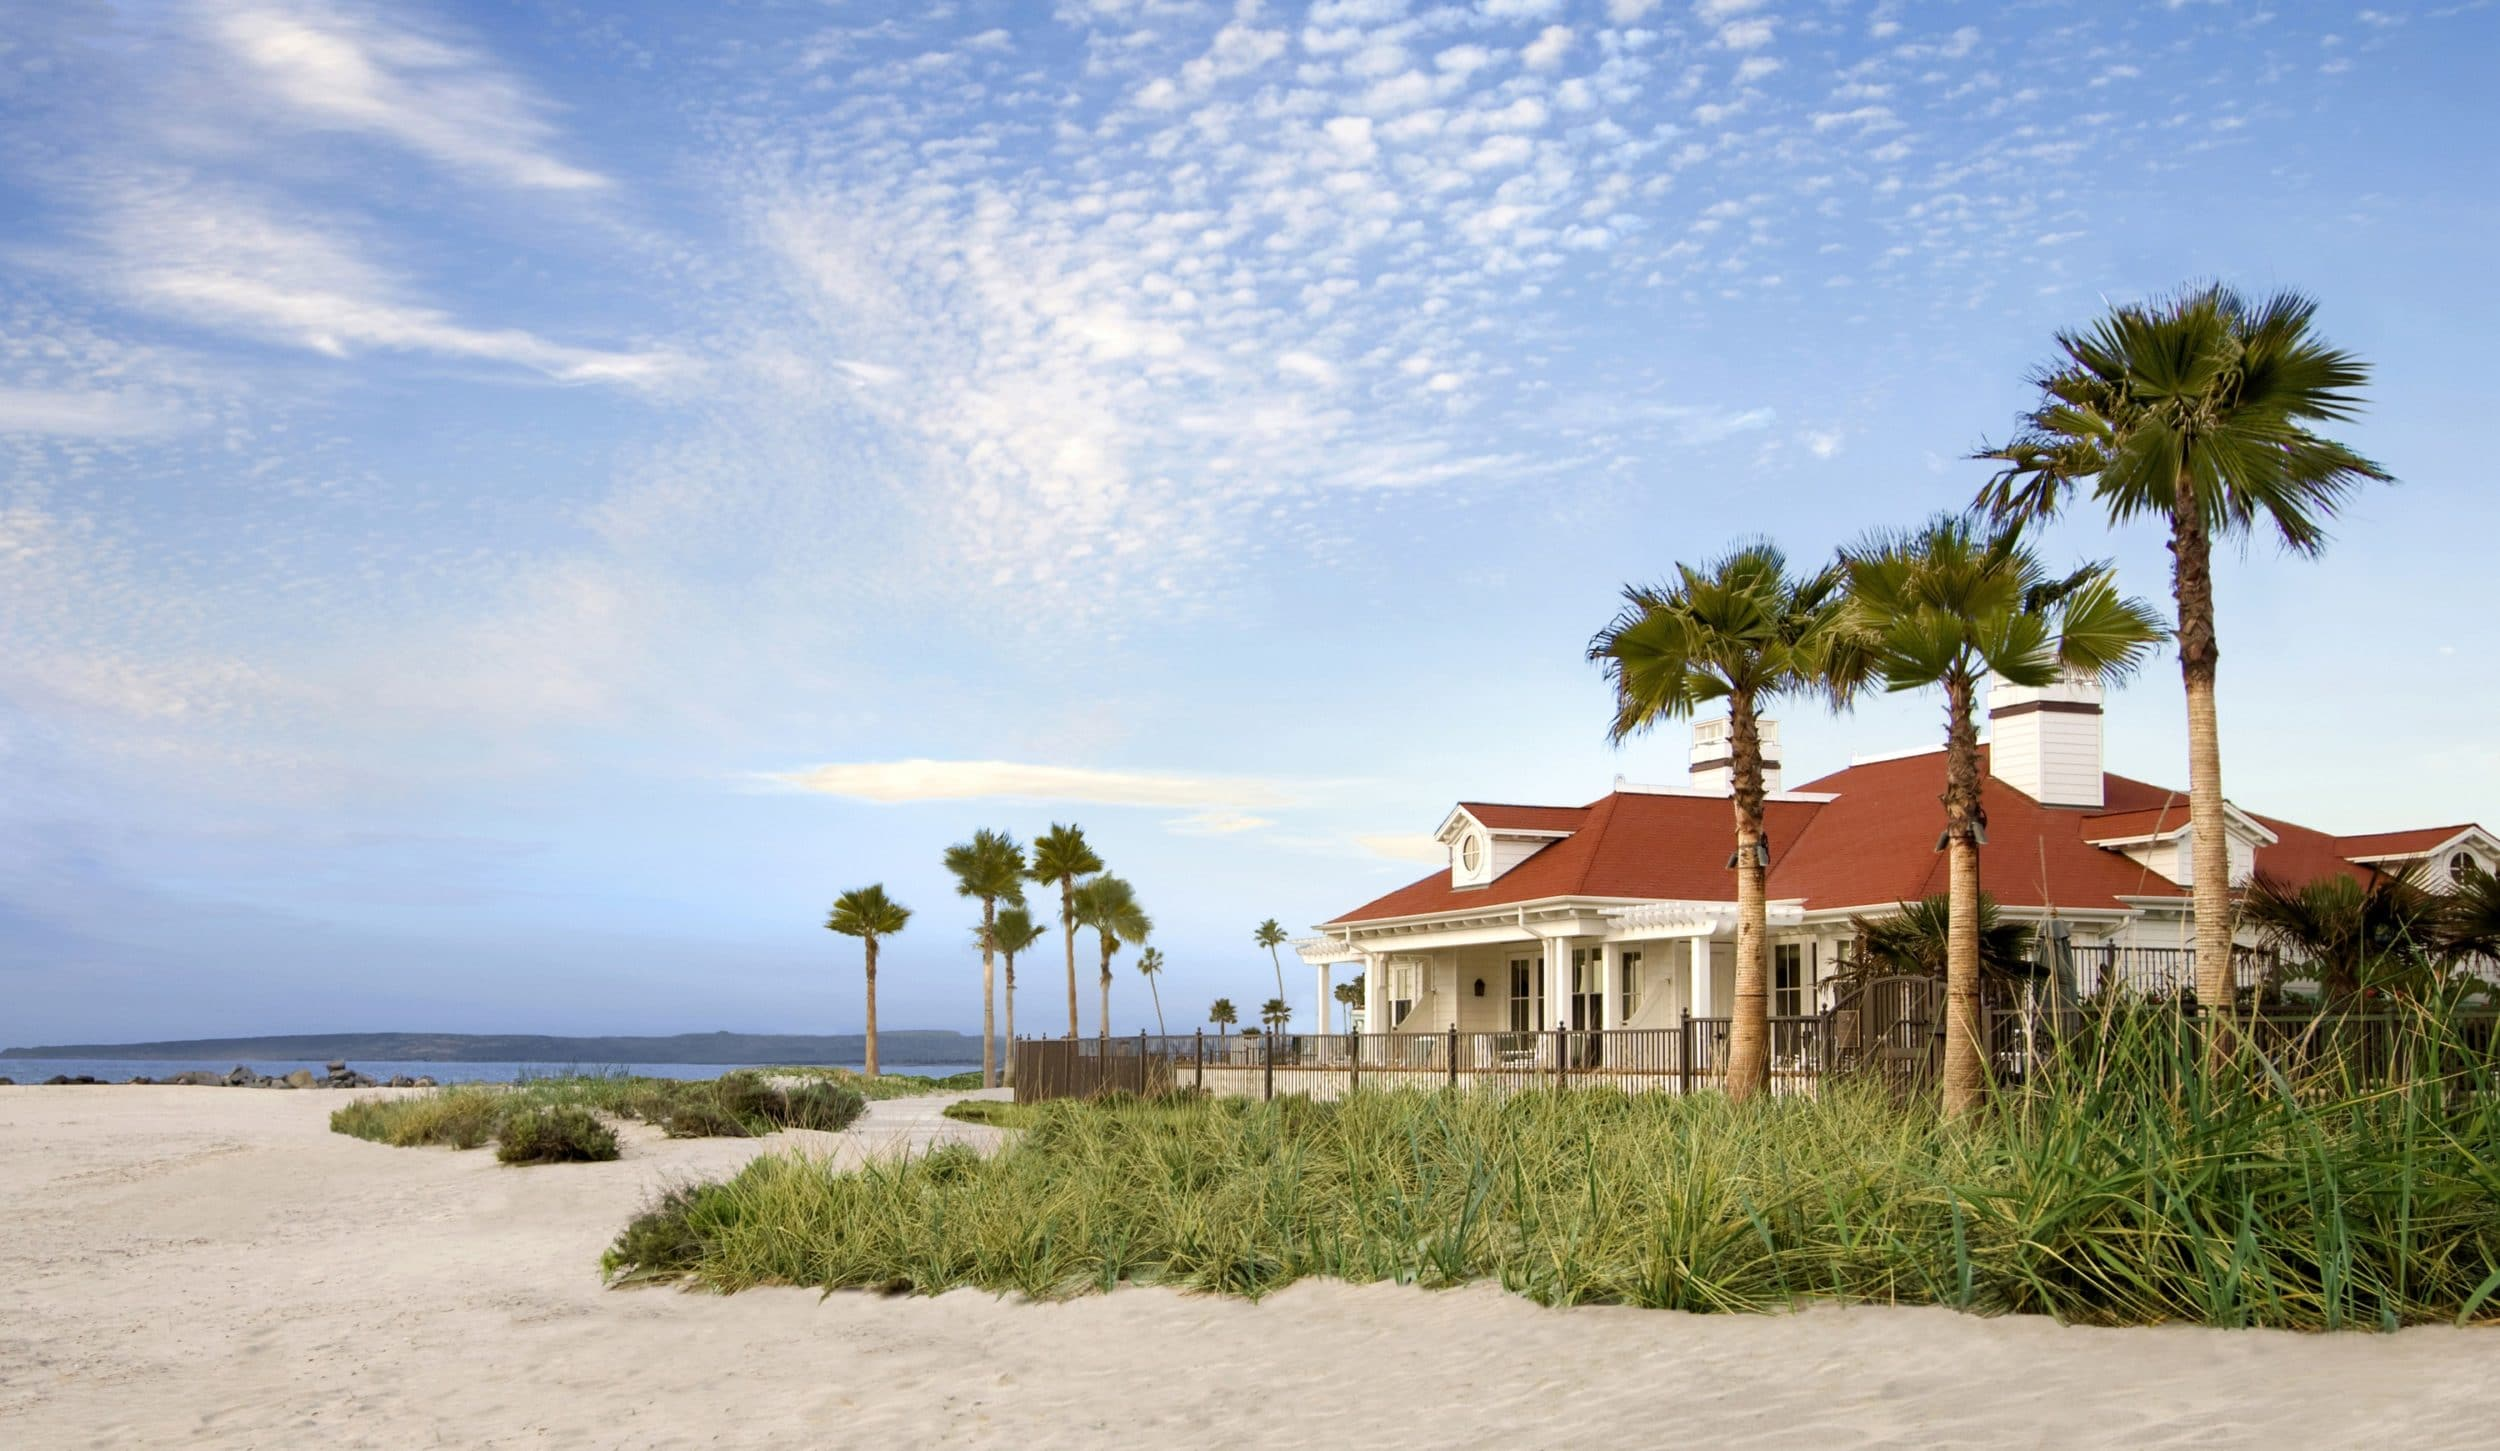 Best beach hotels in San Diego: Beach Village at The Del buildings are separated from the beach by a boardwalk.